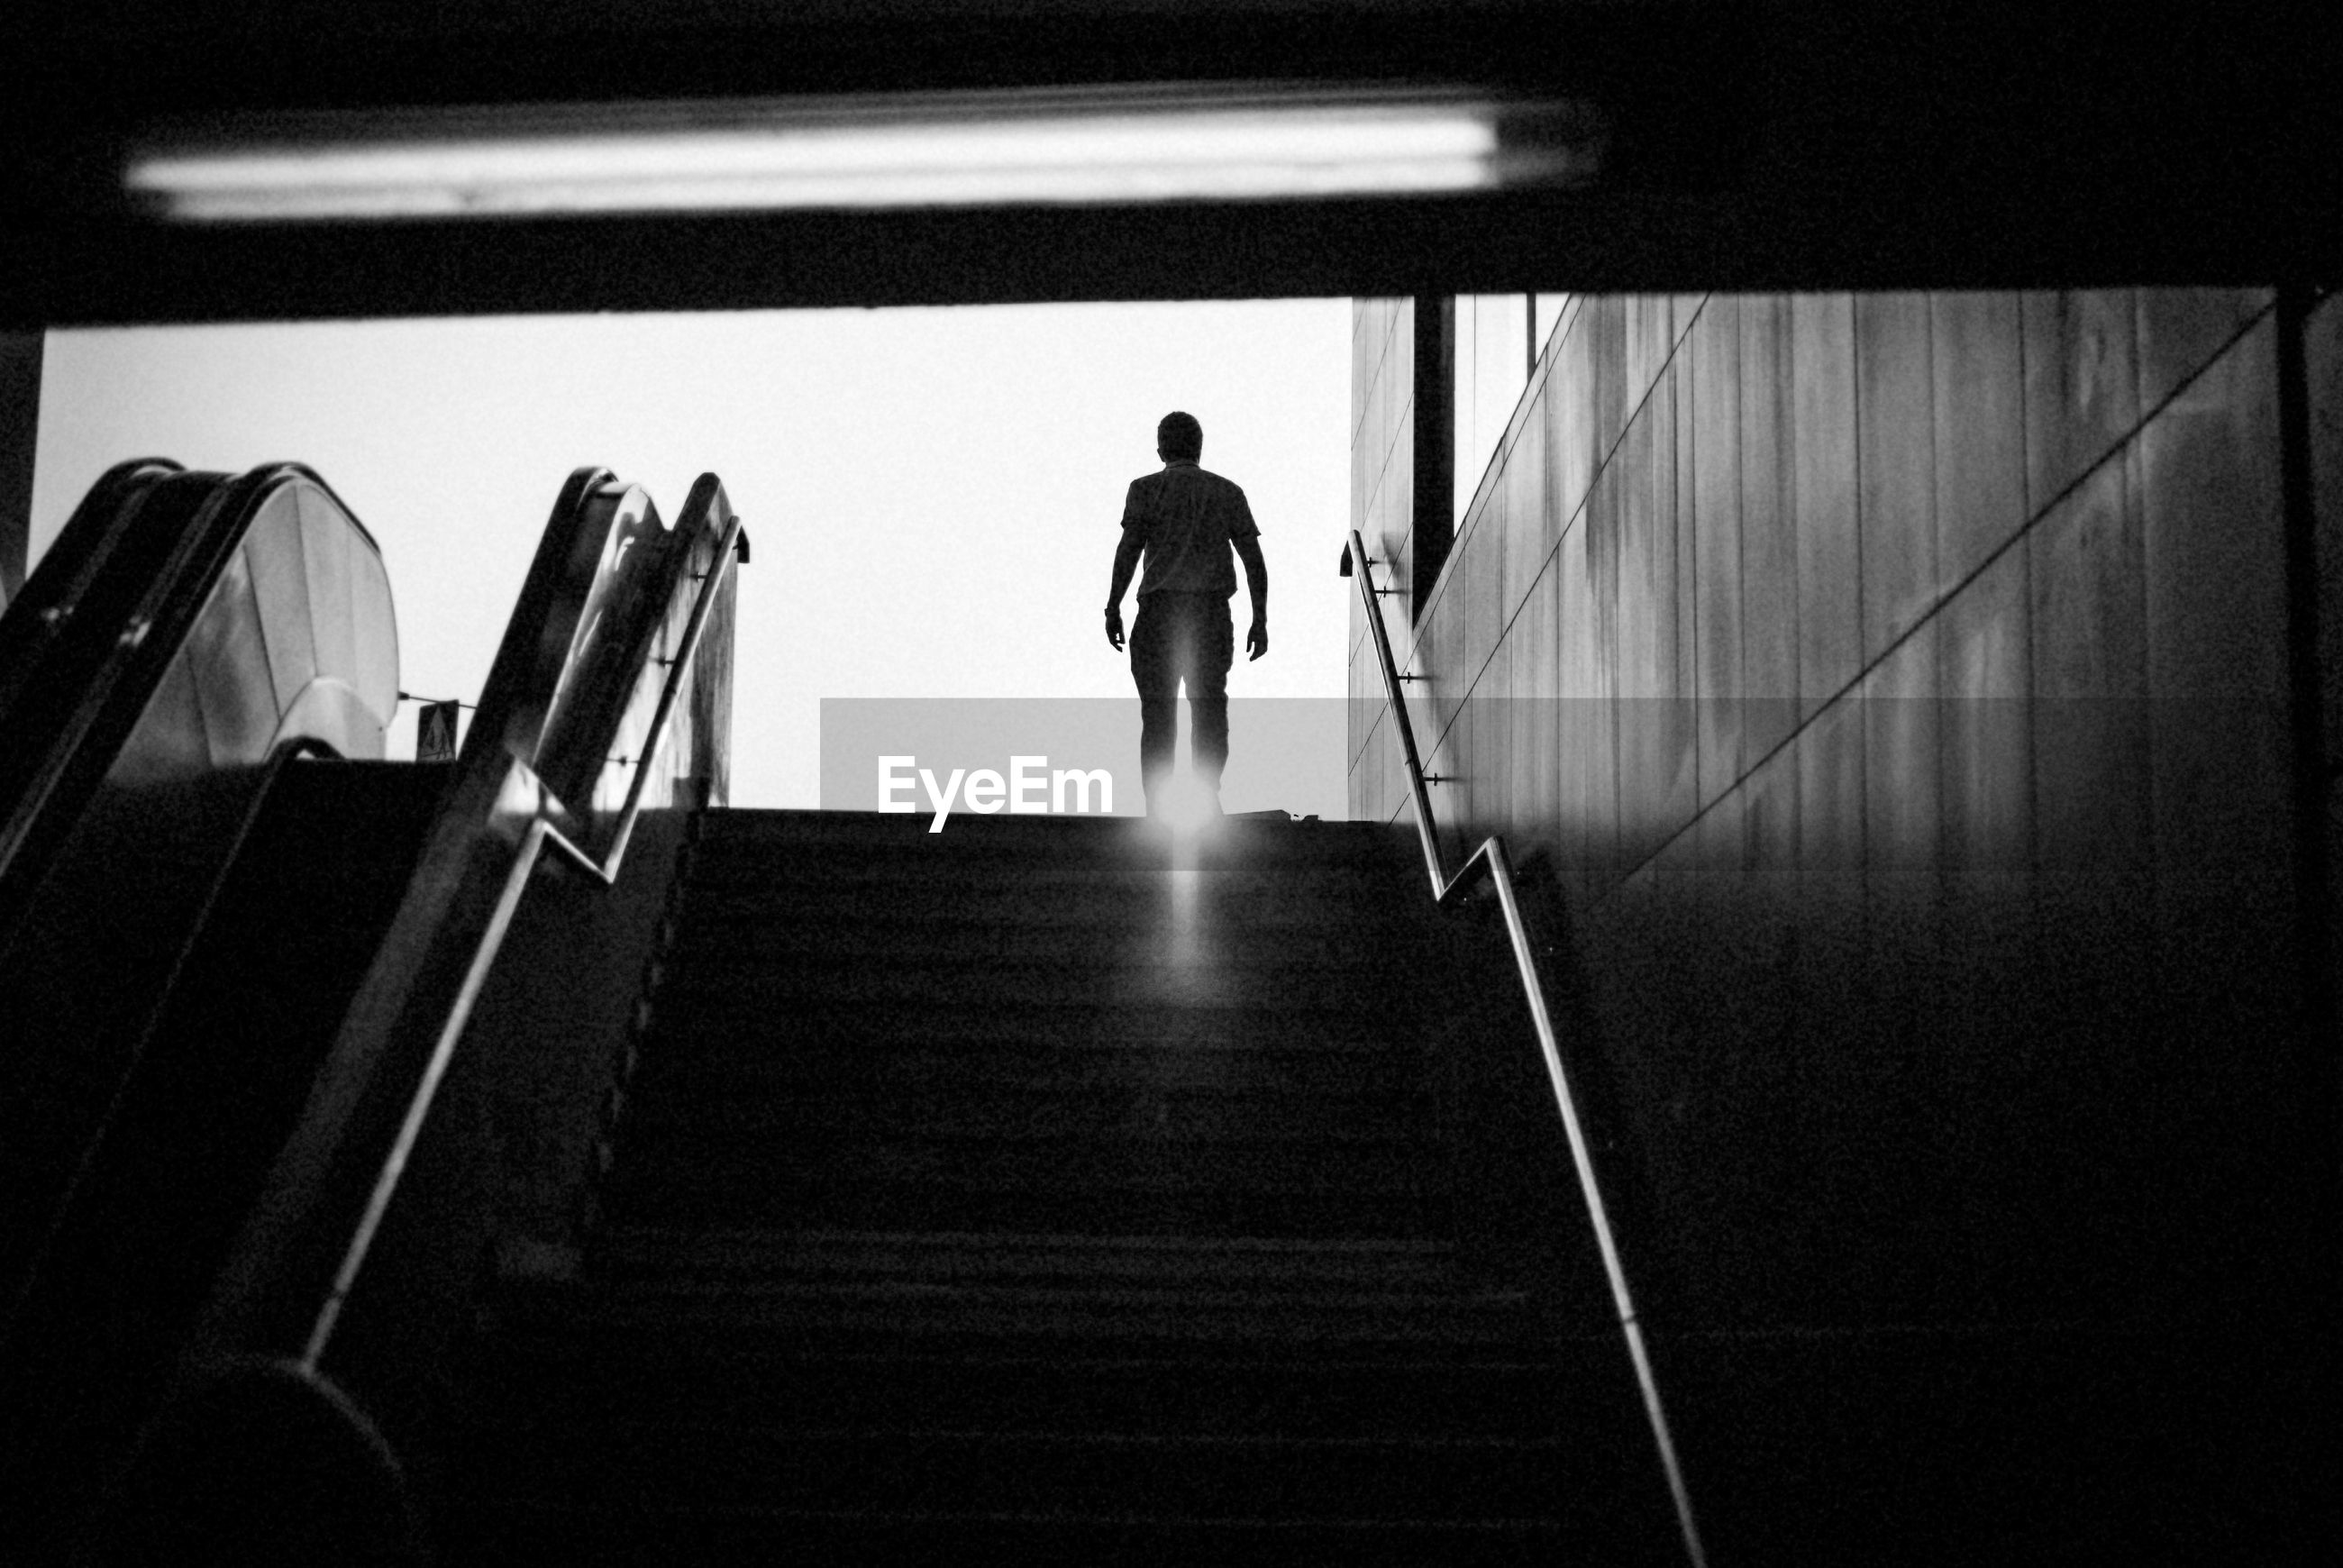 Low angle view of man walking on steps